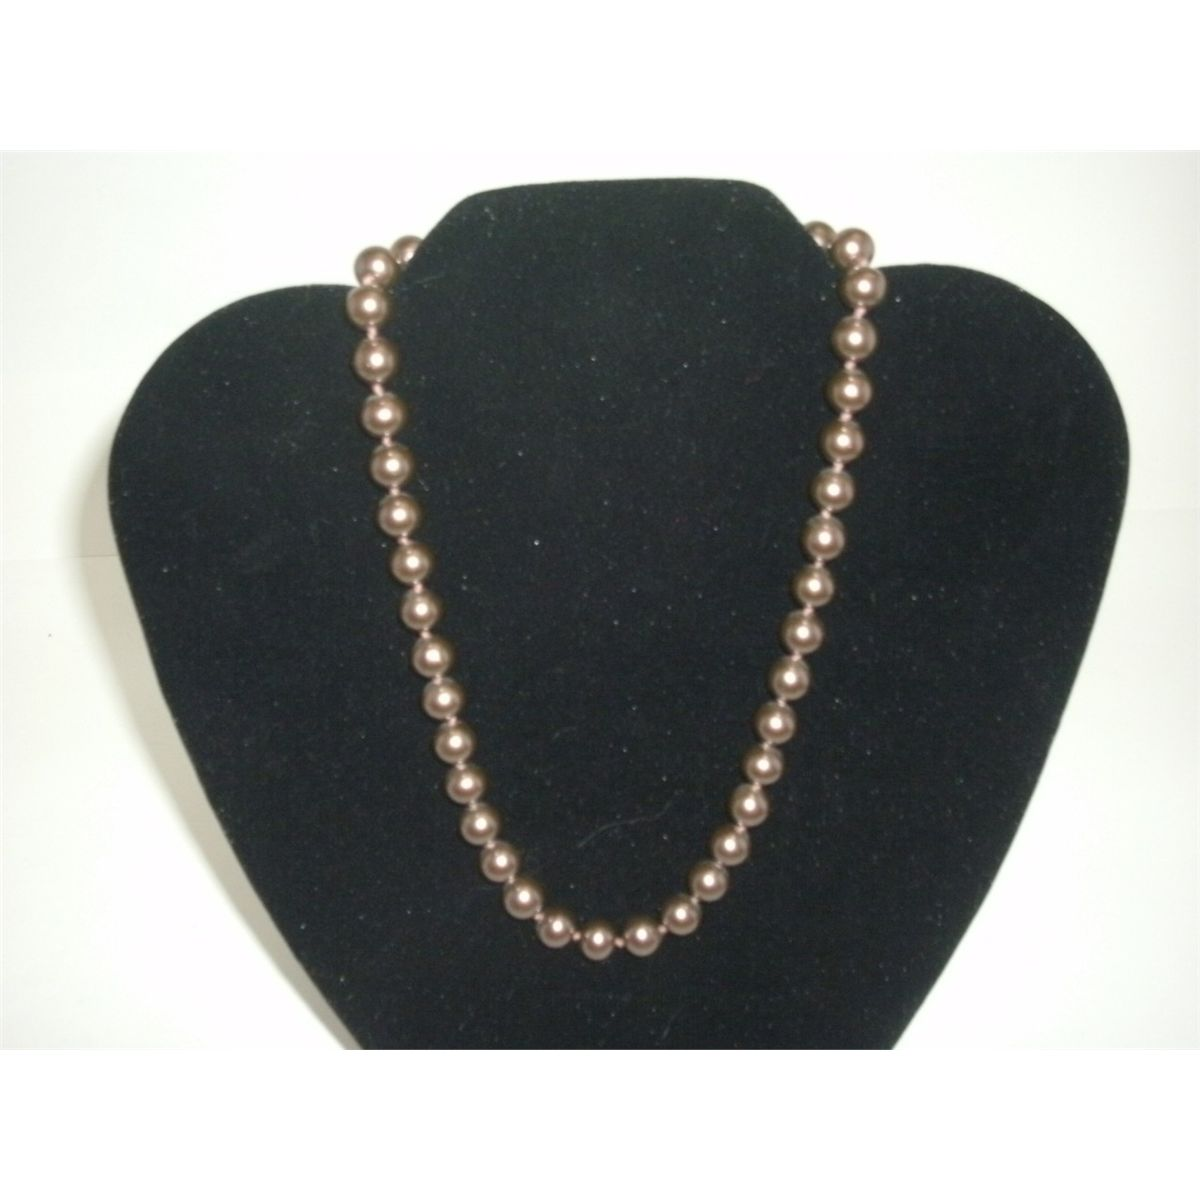 Vintage Richelieu Knotted Simulated Pearl Choker Necklace Very